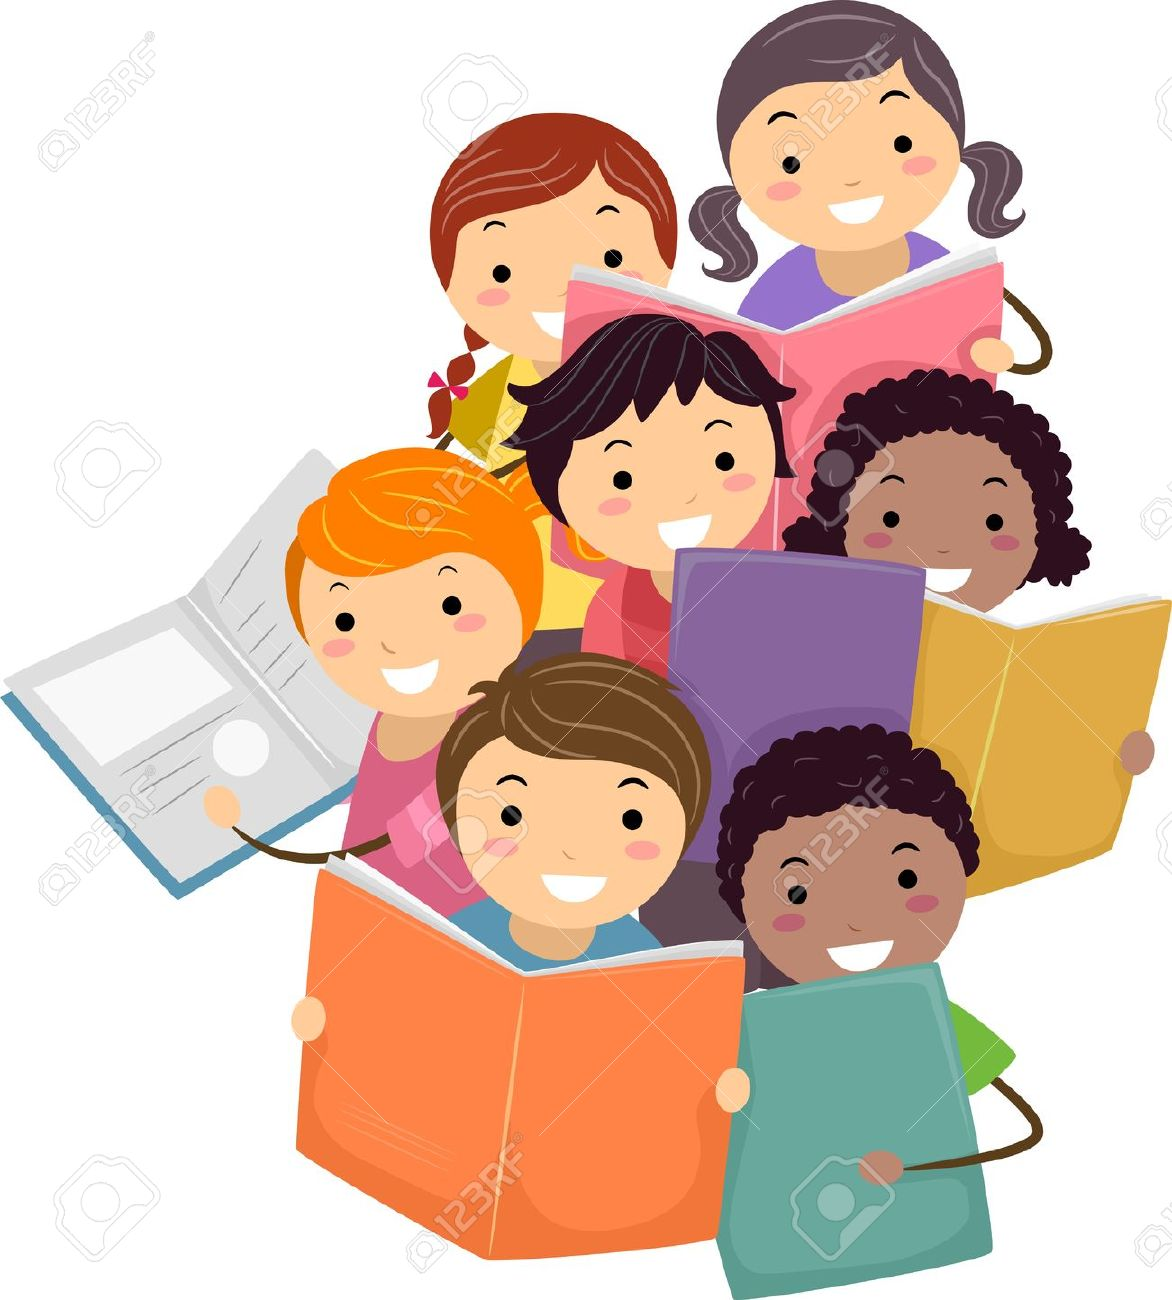 Kids with books clipart svg library download Illustration Of Stickman Kids Reading Books Stock Photo, Picture ... svg library download